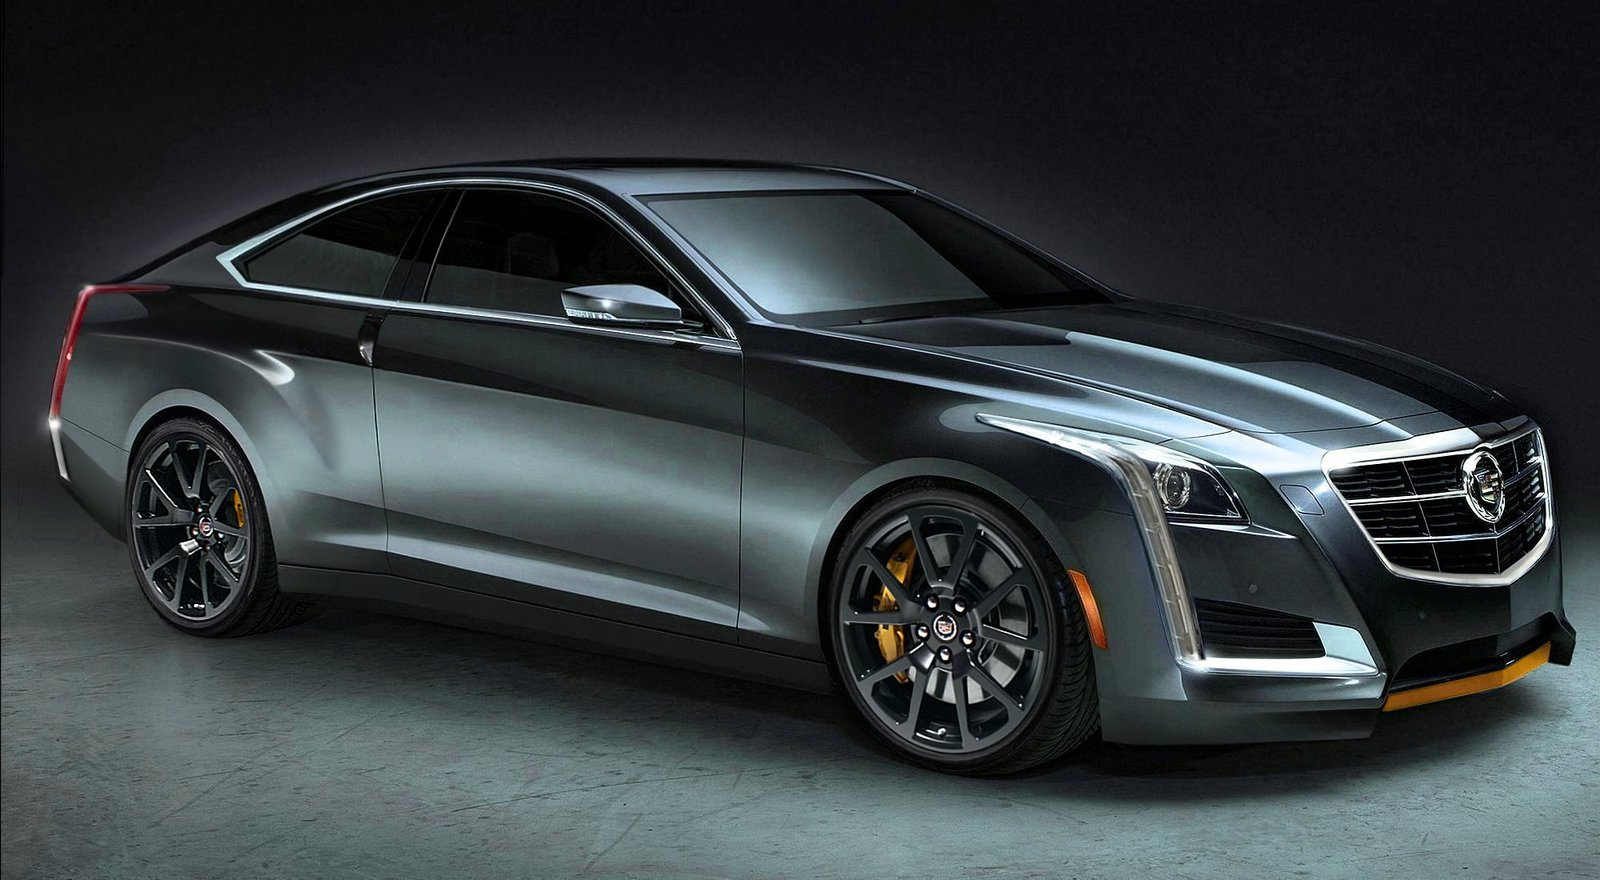 2017 Cts Coupe Hd Wallpapers